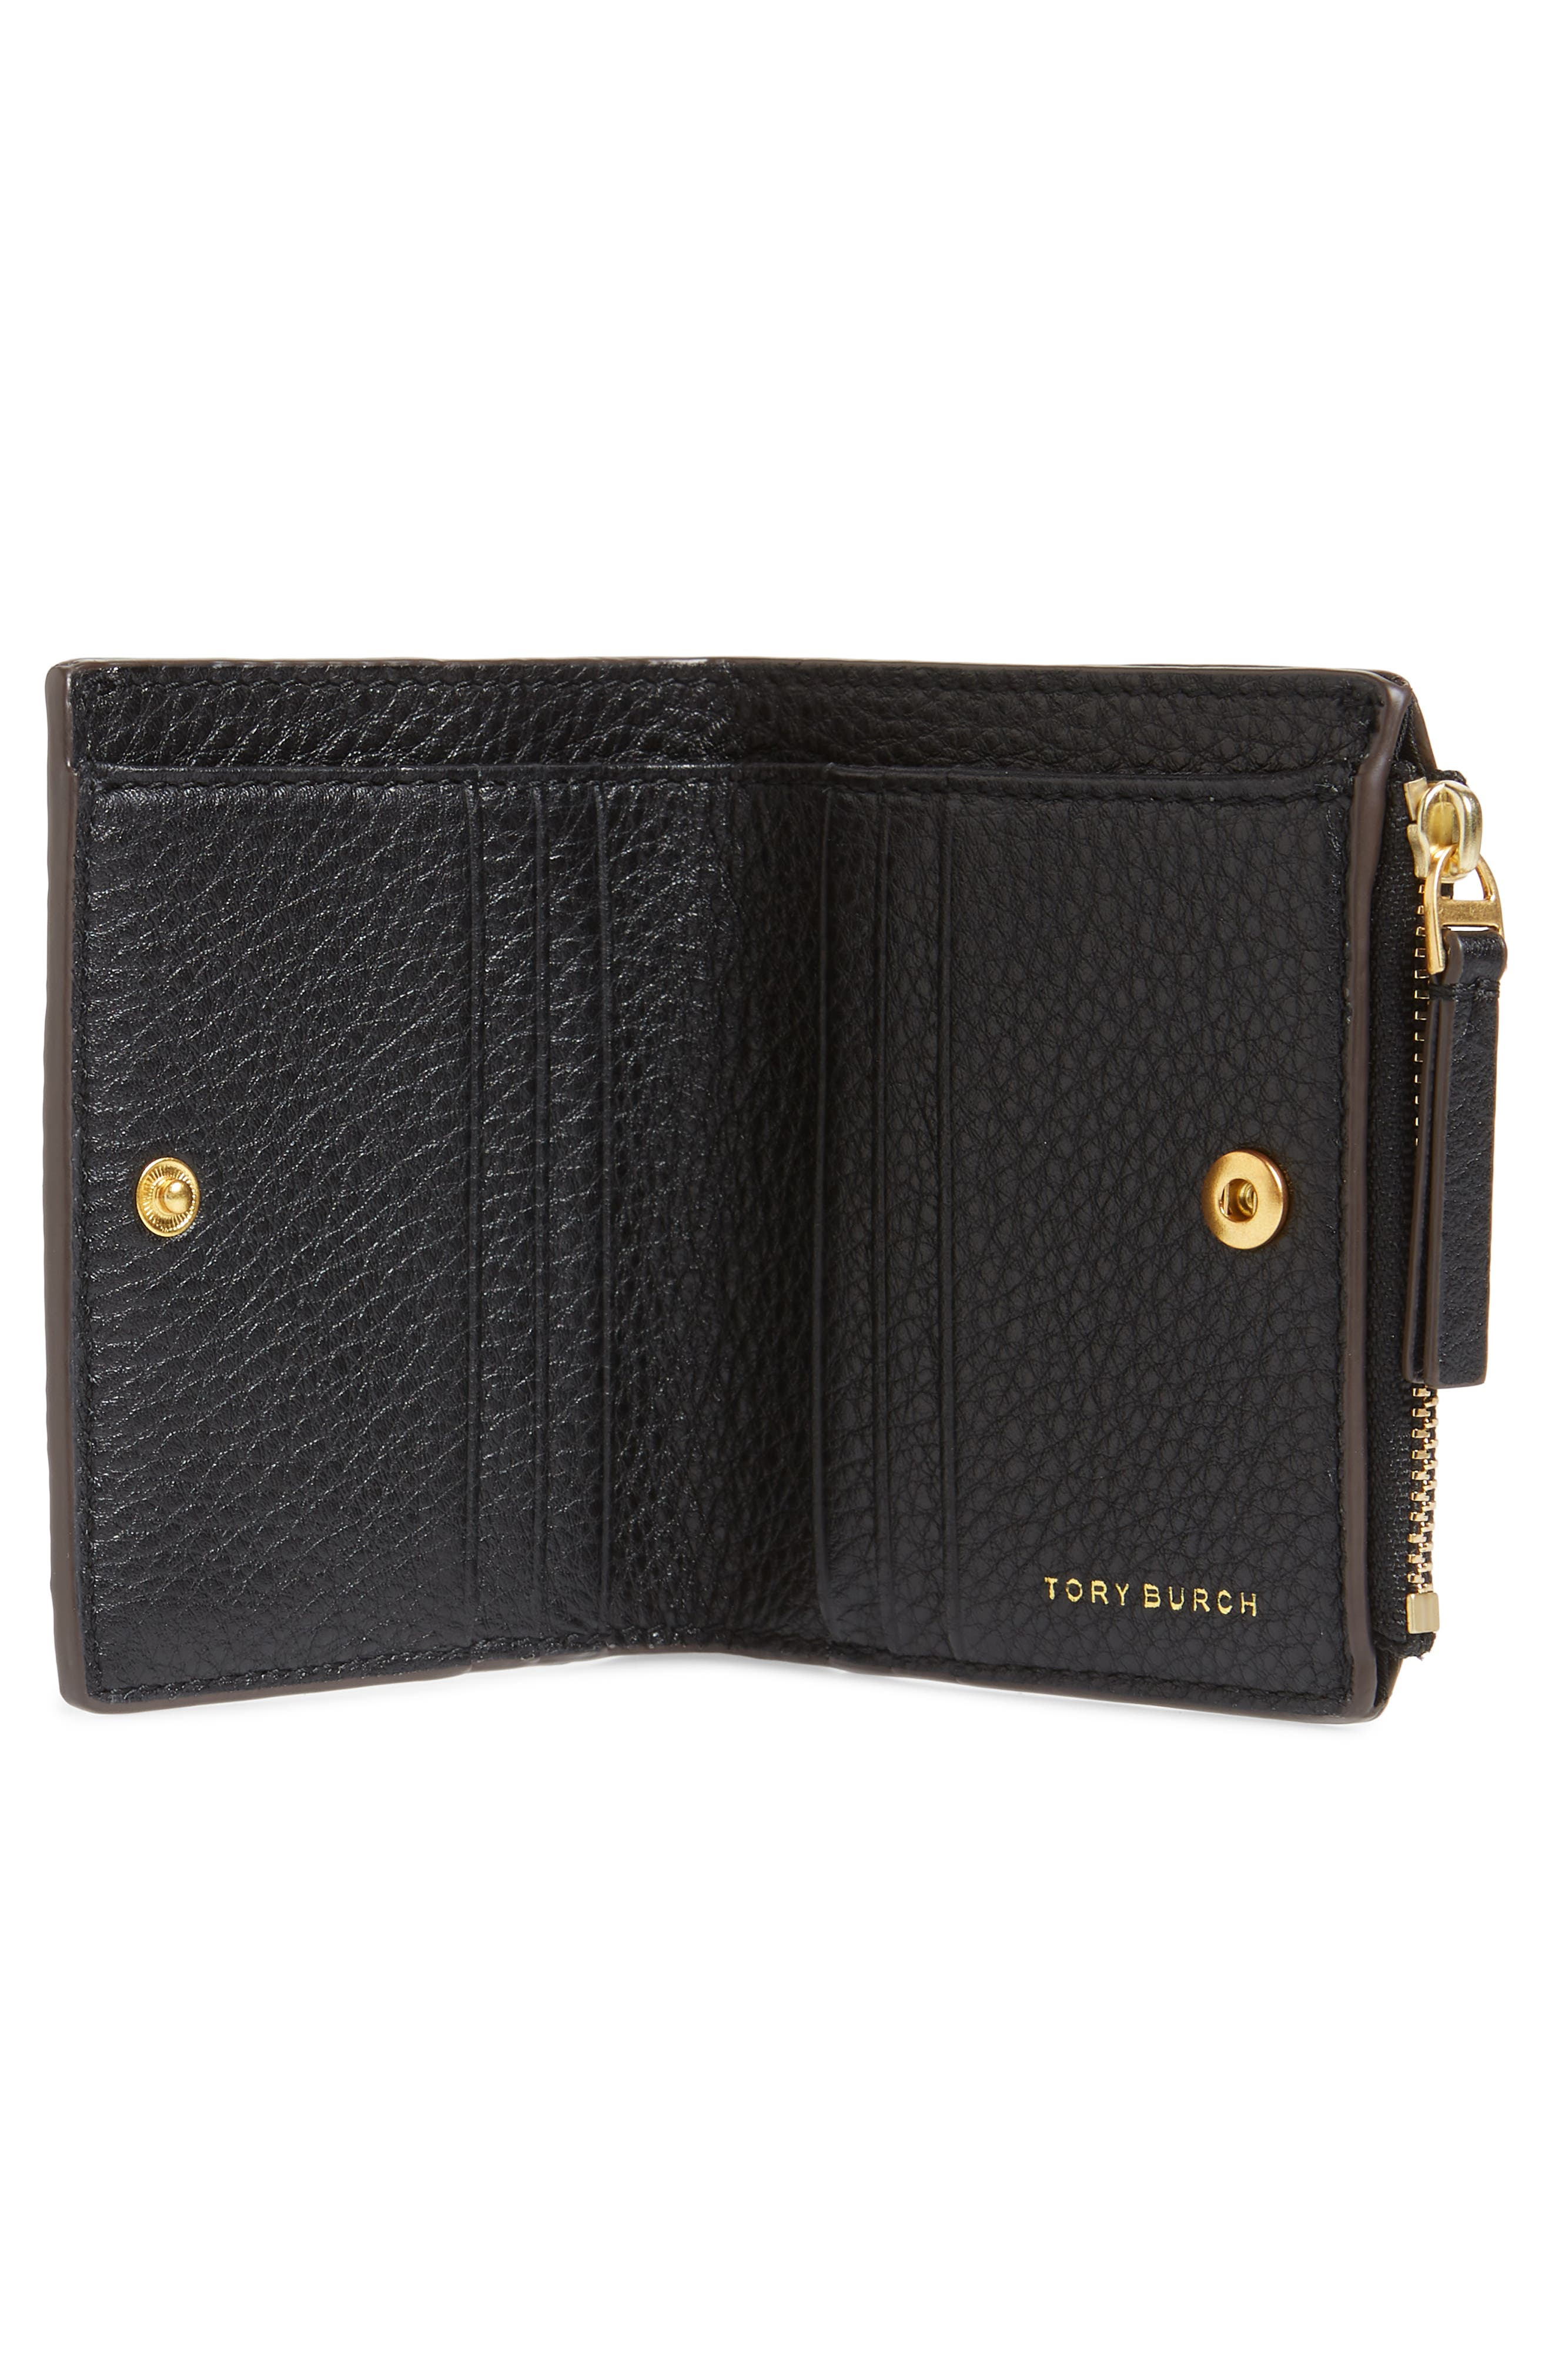 McGraw Leather Bifold Wallet,                             Alternate thumbnail 2, color,                             001